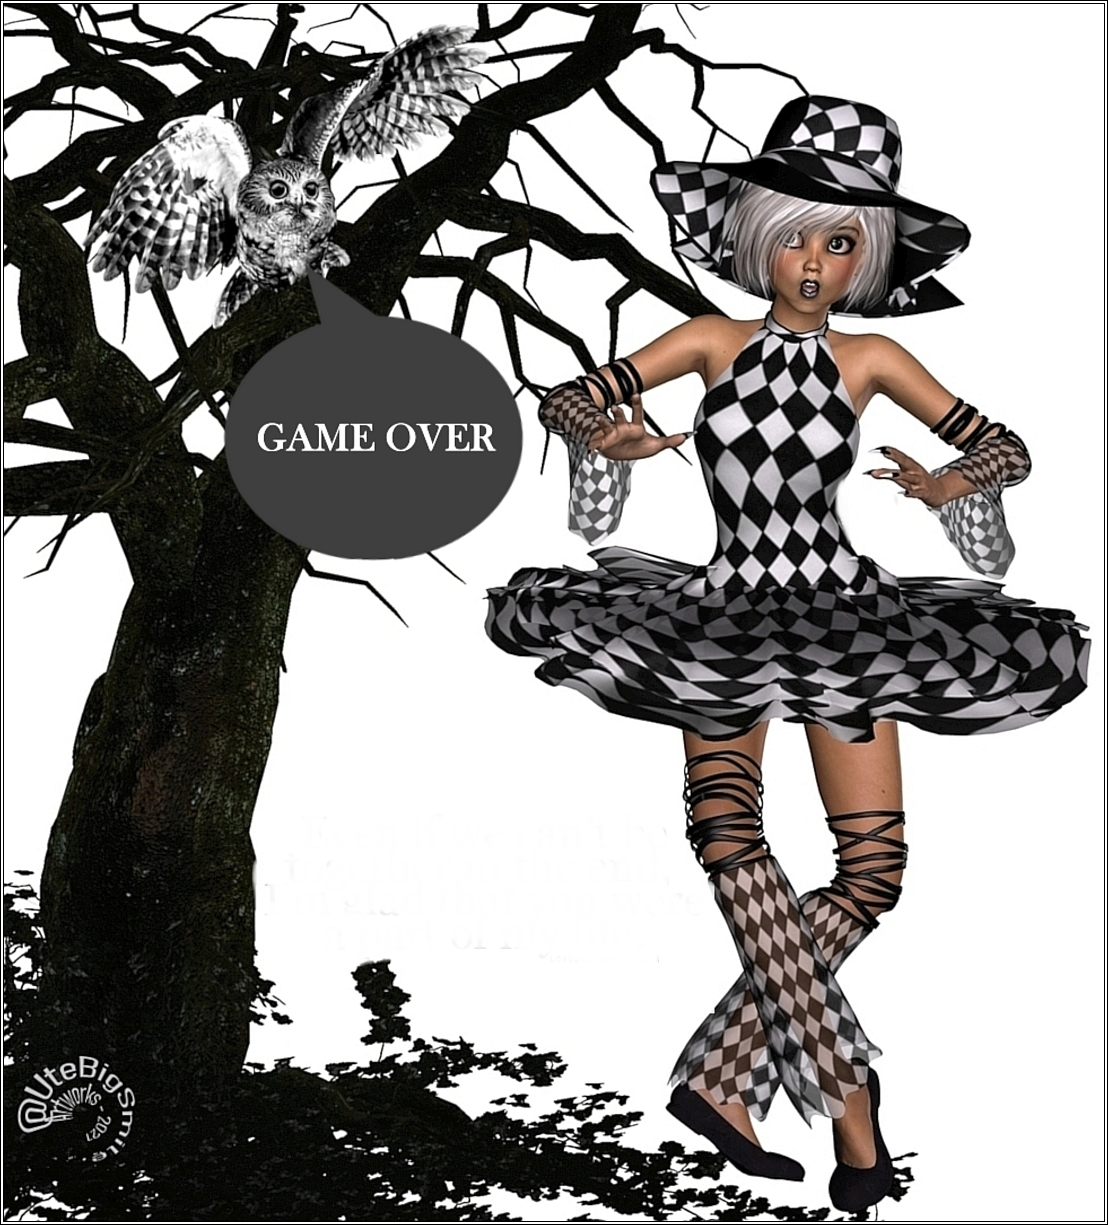 *Game Over* by UteBigSmile